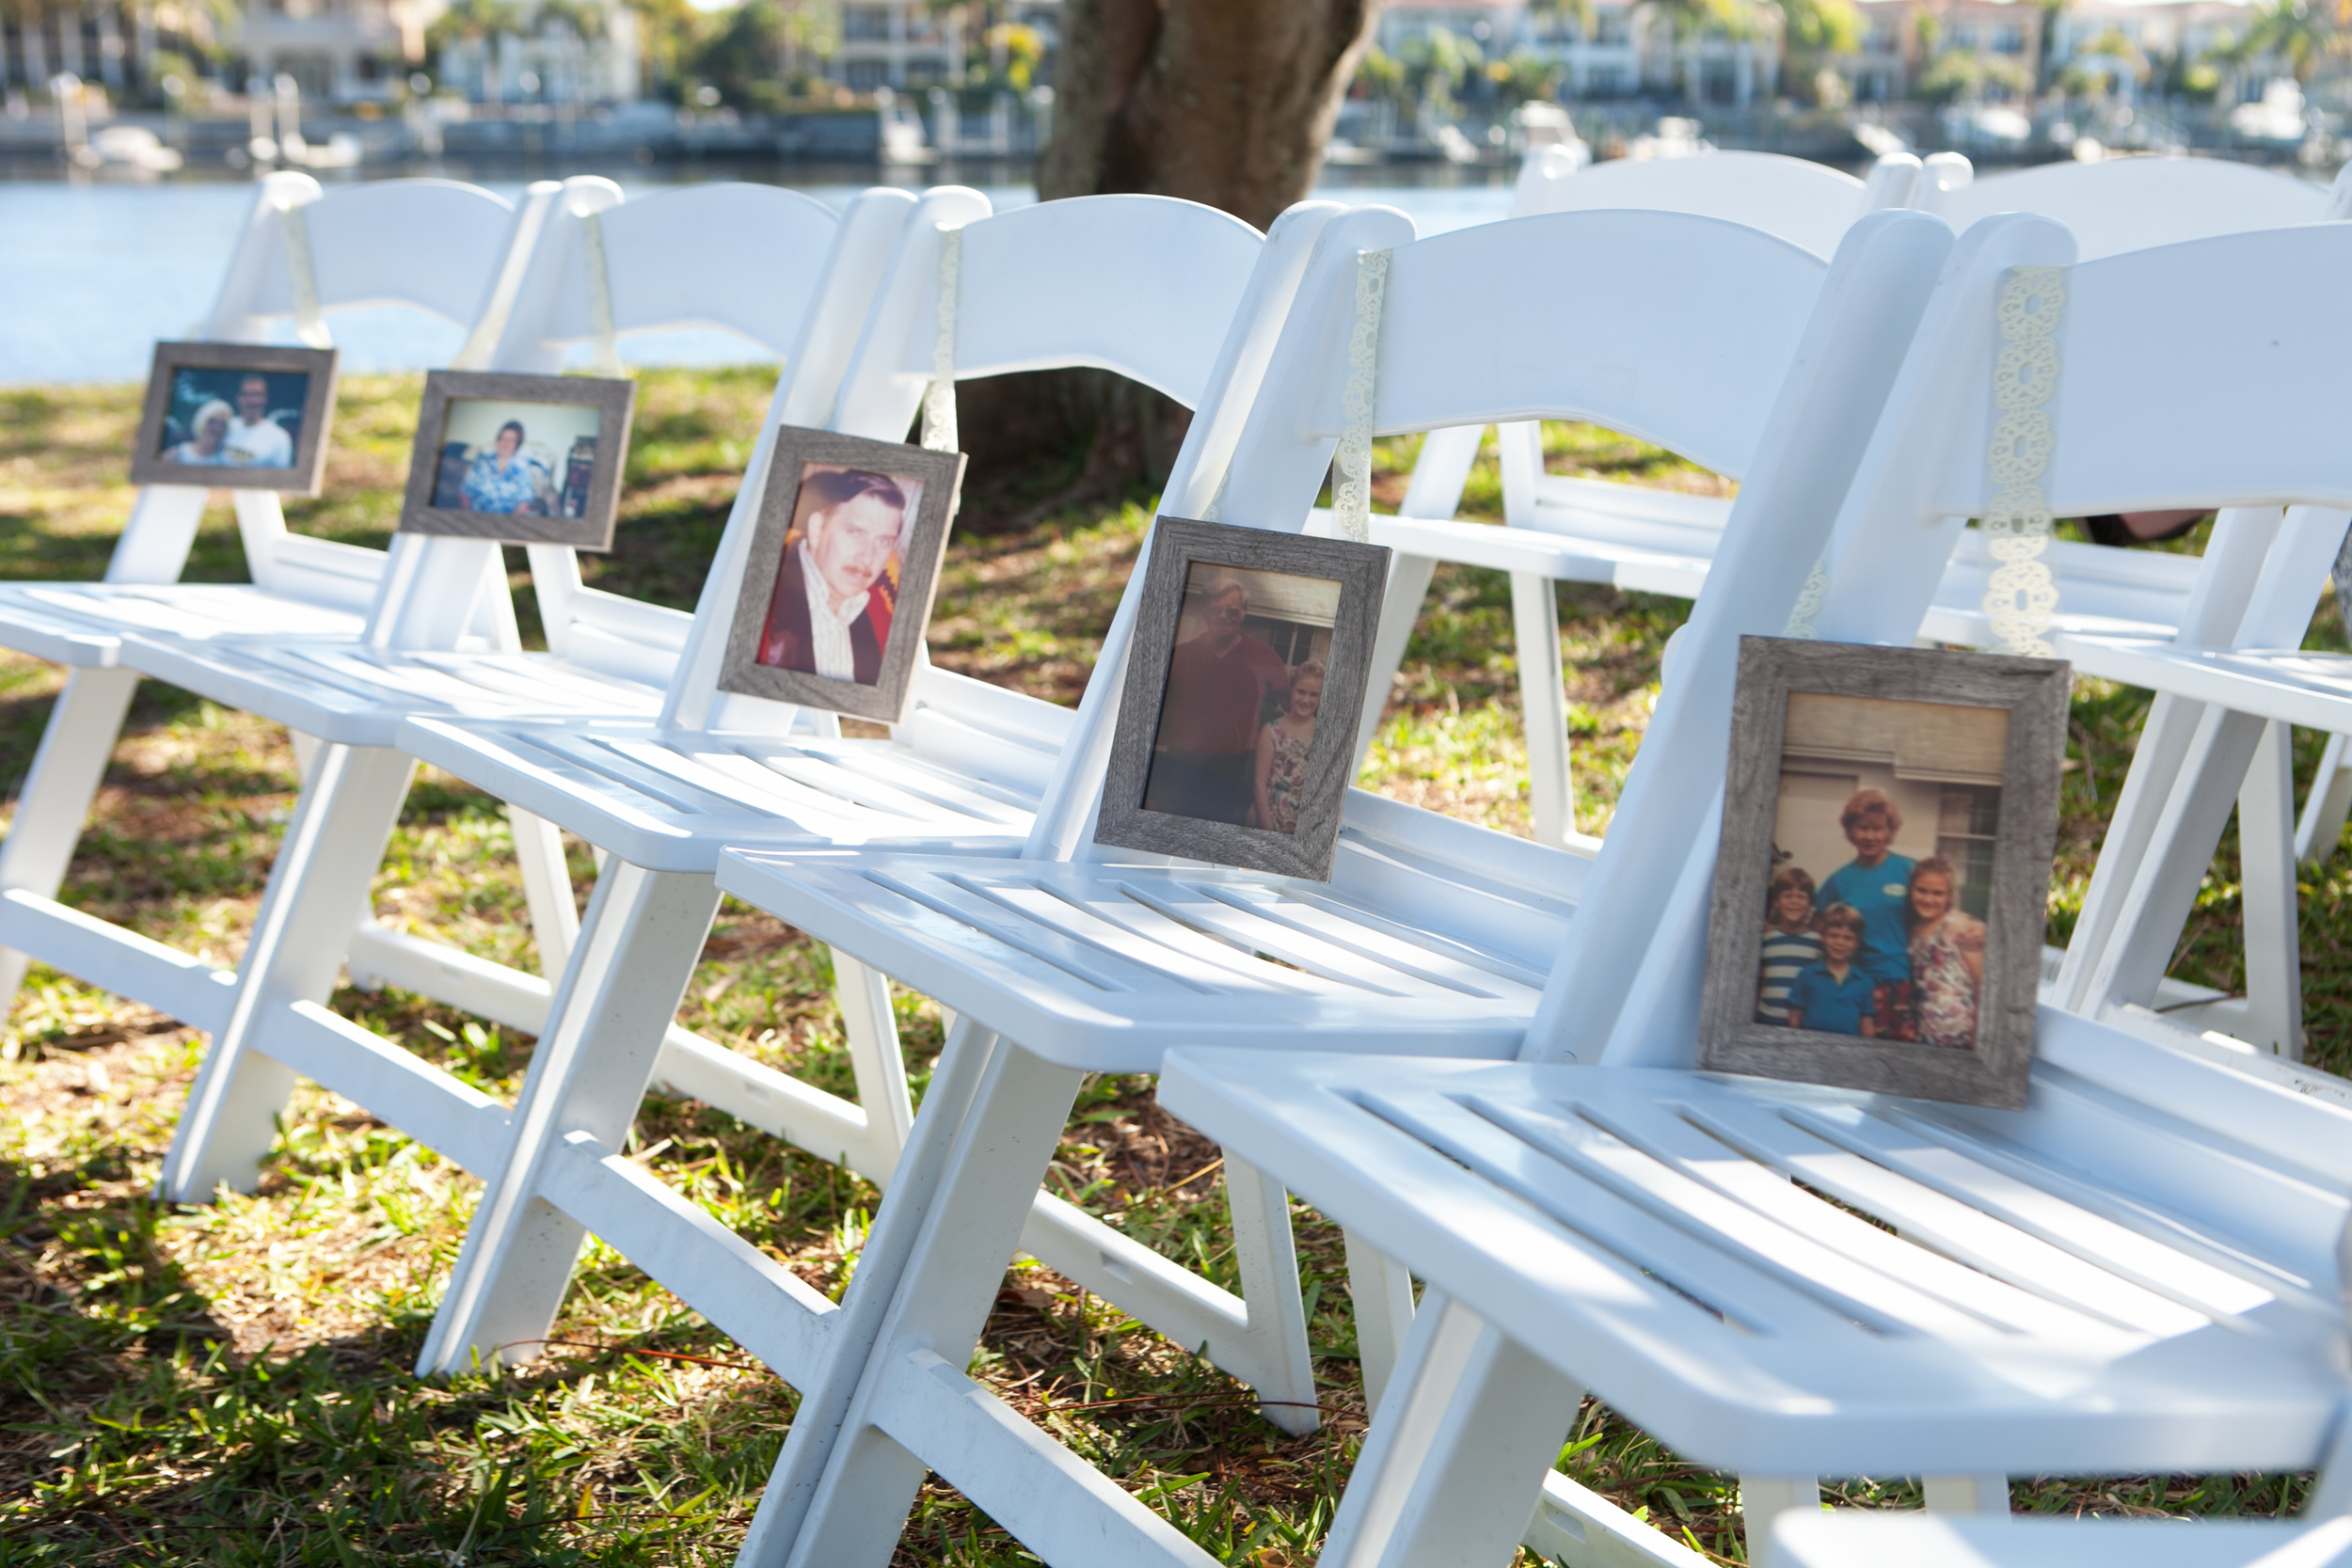 Pictures of special family members who were not present were displayed at the ceremony